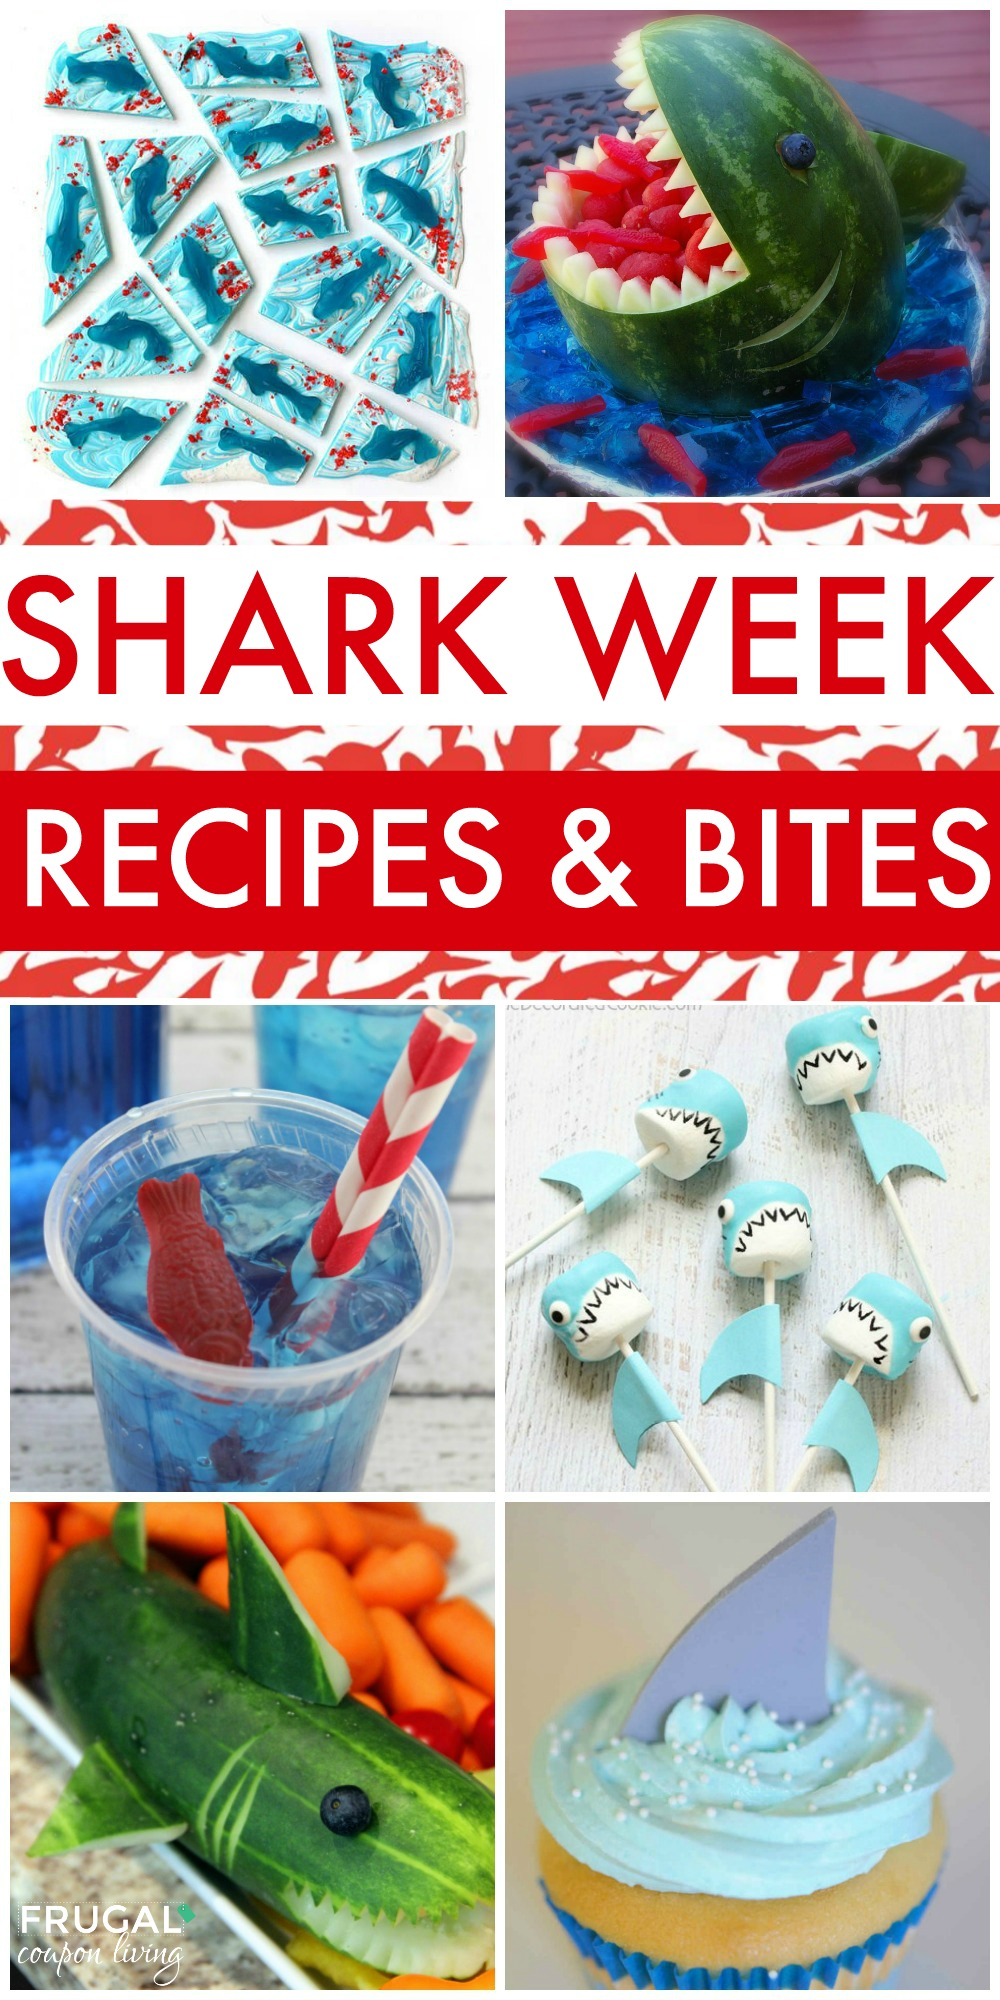 shark-food-collage-frugal-coupon-living